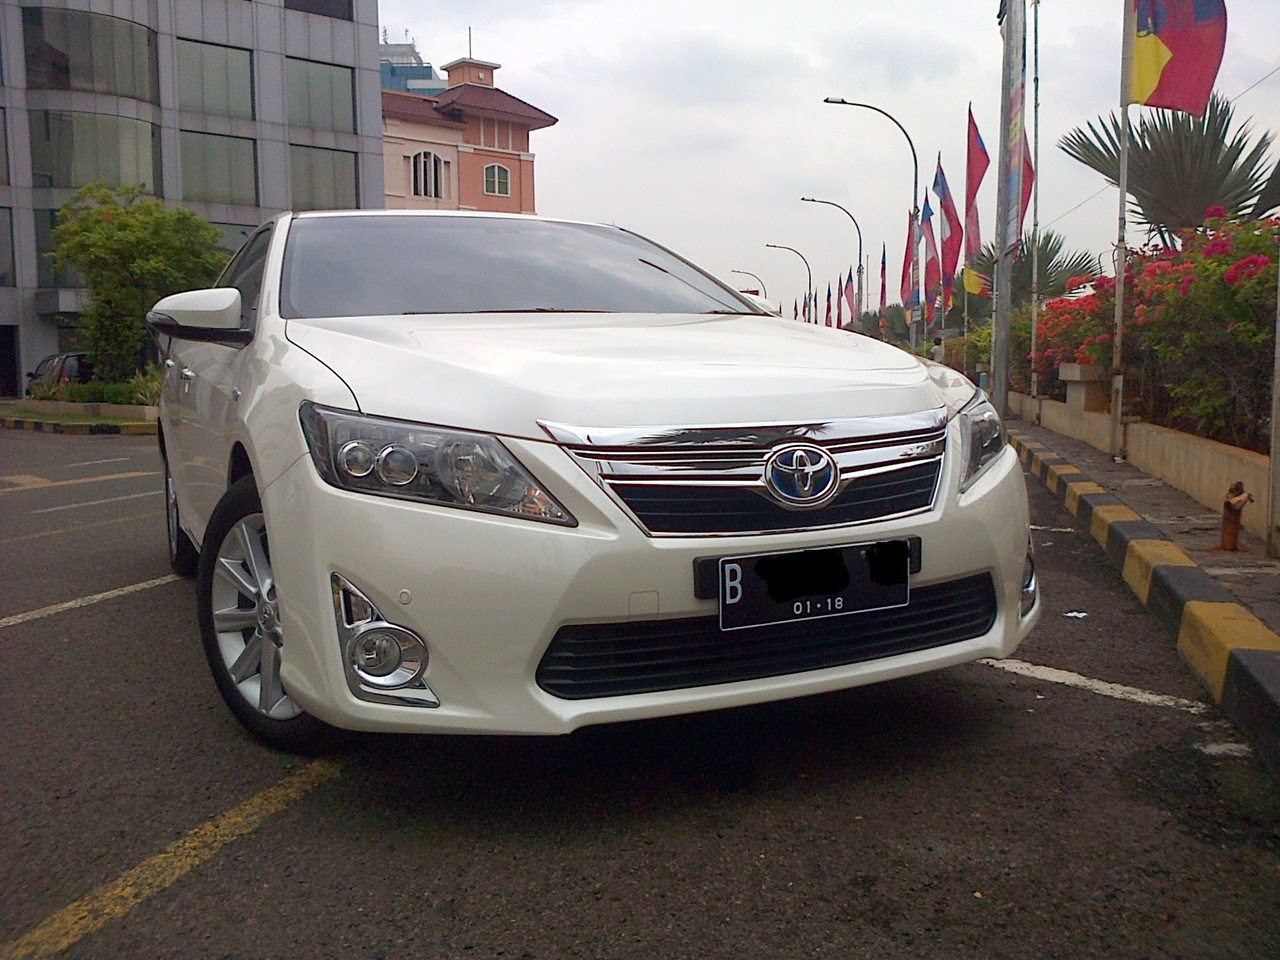 WTS Toyota Camry Hybrid 25 Type L White 2012 Km Low Second